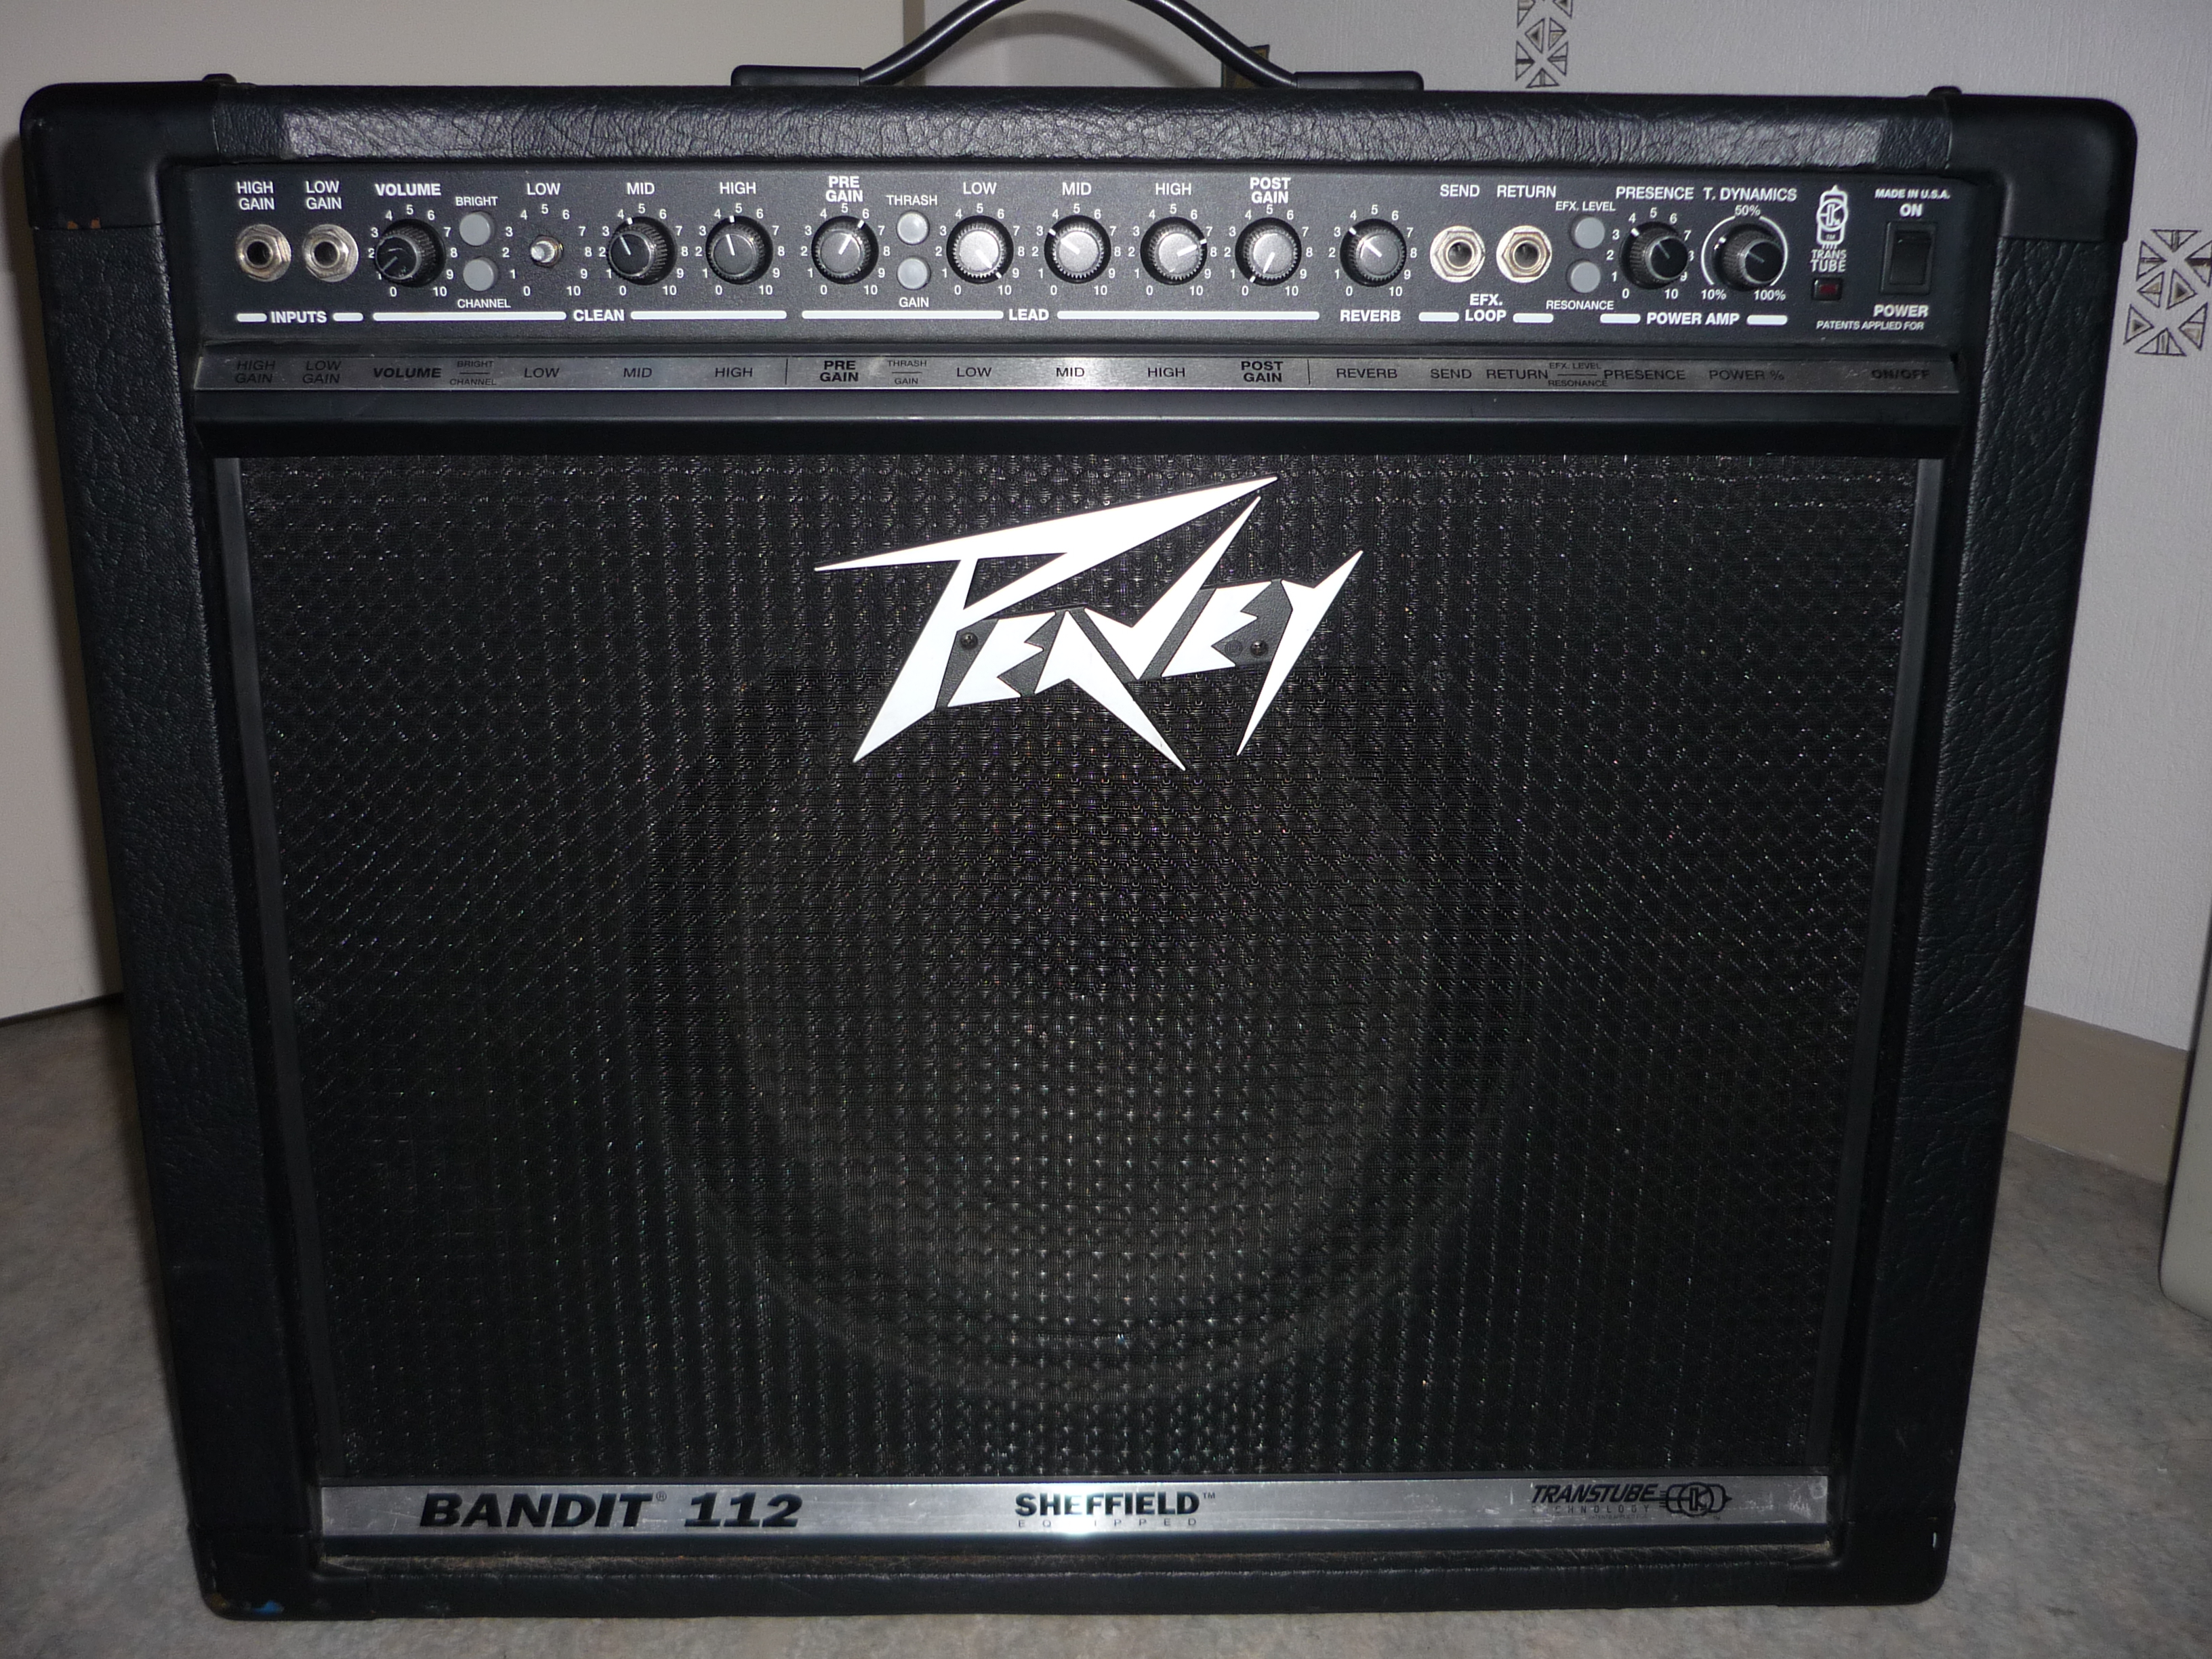 Home Design Studio Help Peavey Bandit 112 Sheffield Speaker Image 304336